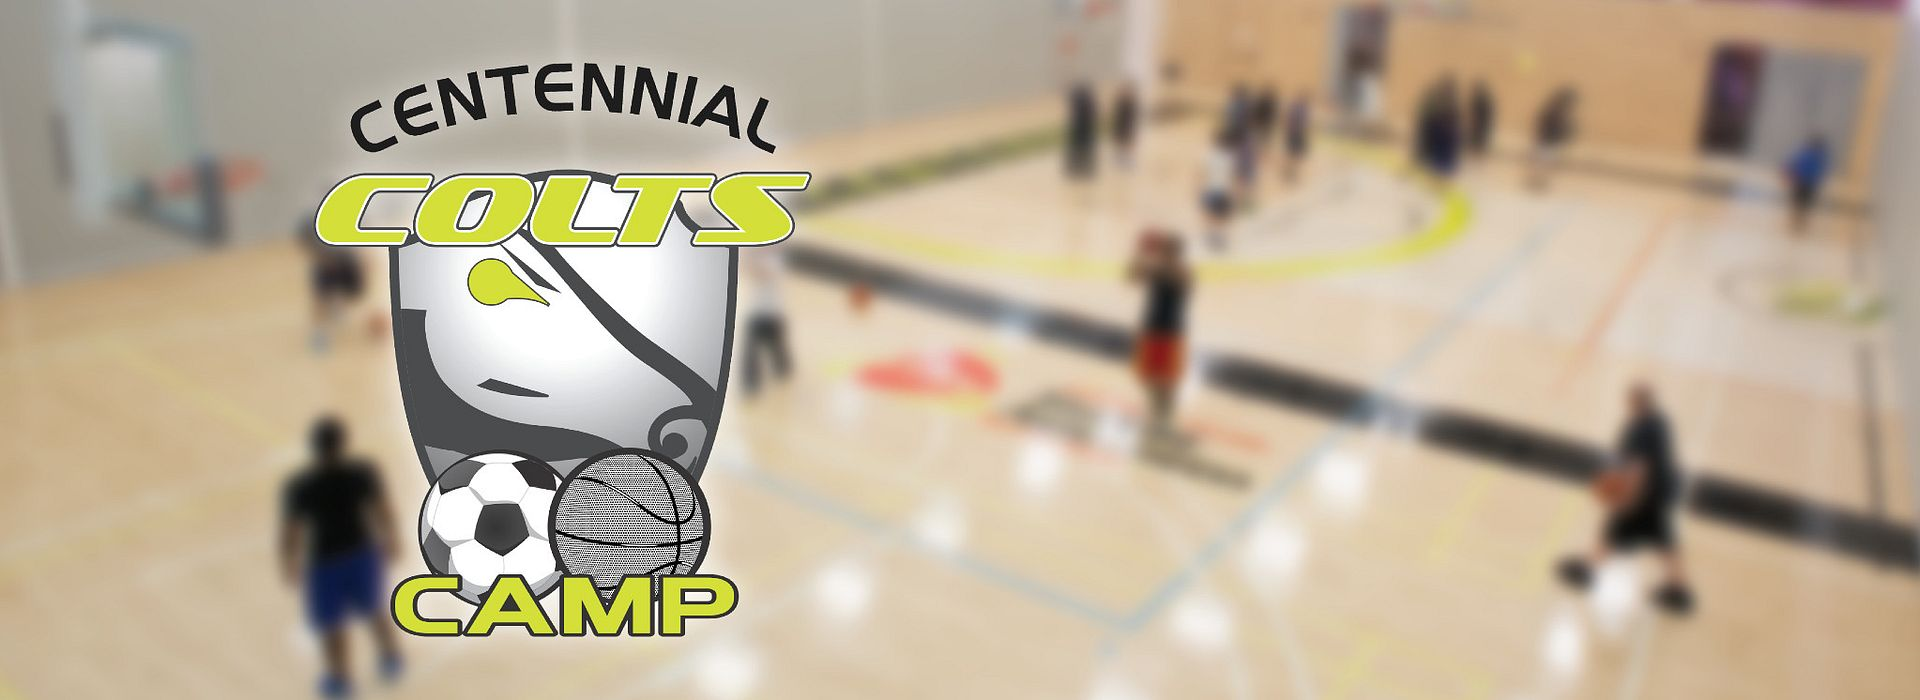 picture of the Centennial Colts Camp logo and people playing basketball in the Progress Campus Gym